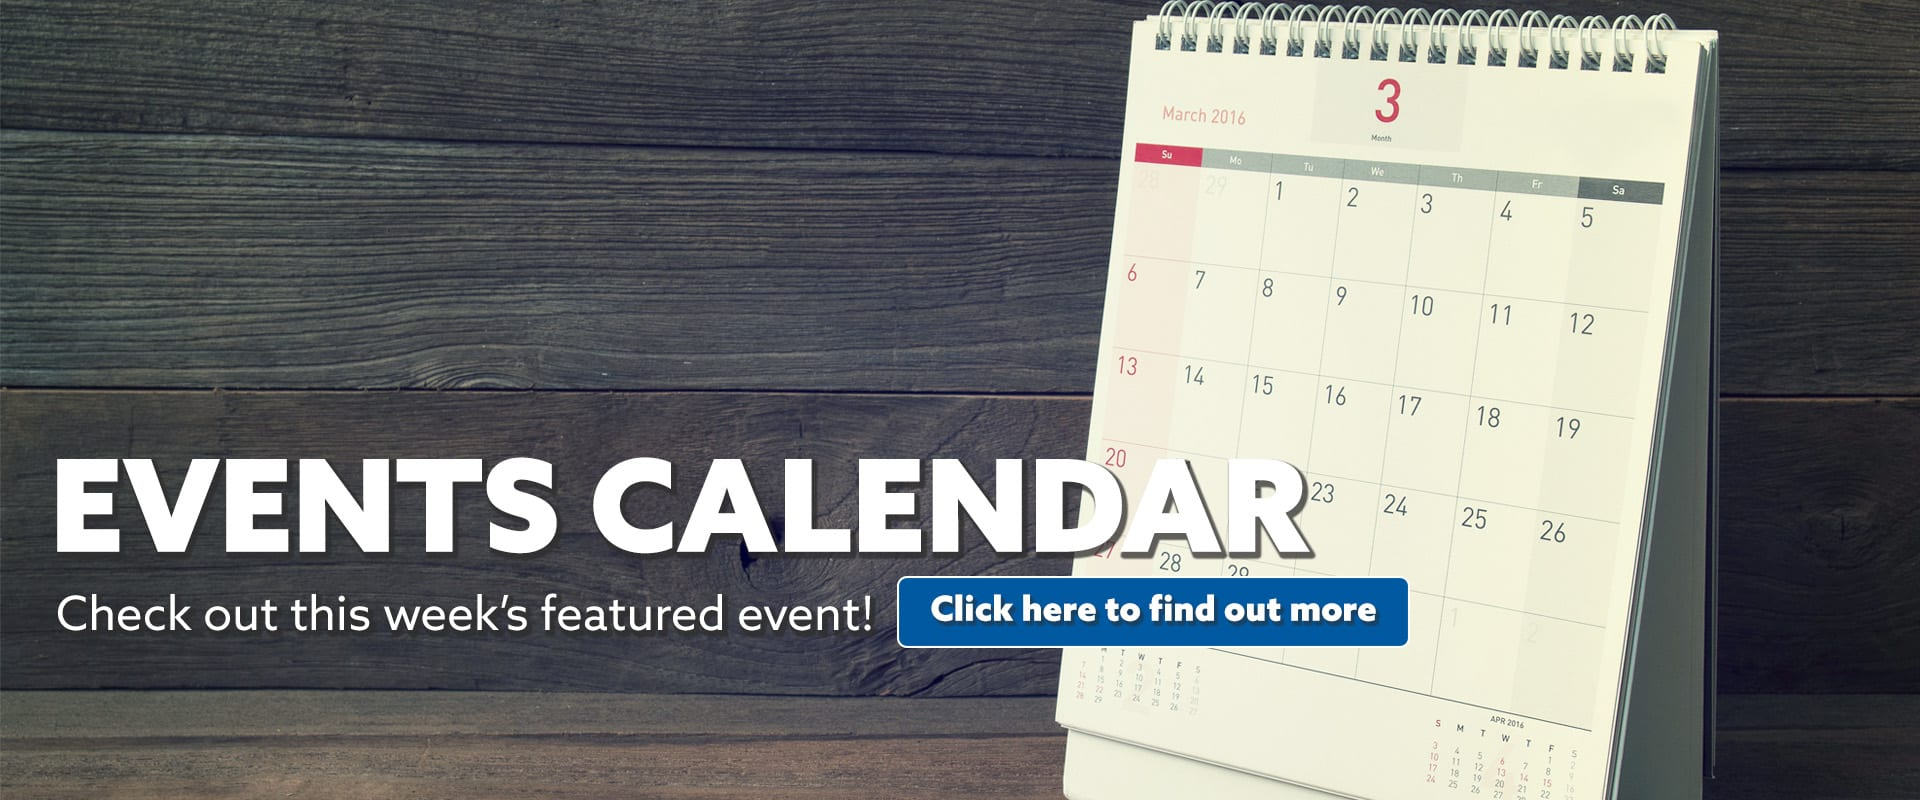 Events Calendar Featured Event KGLY1